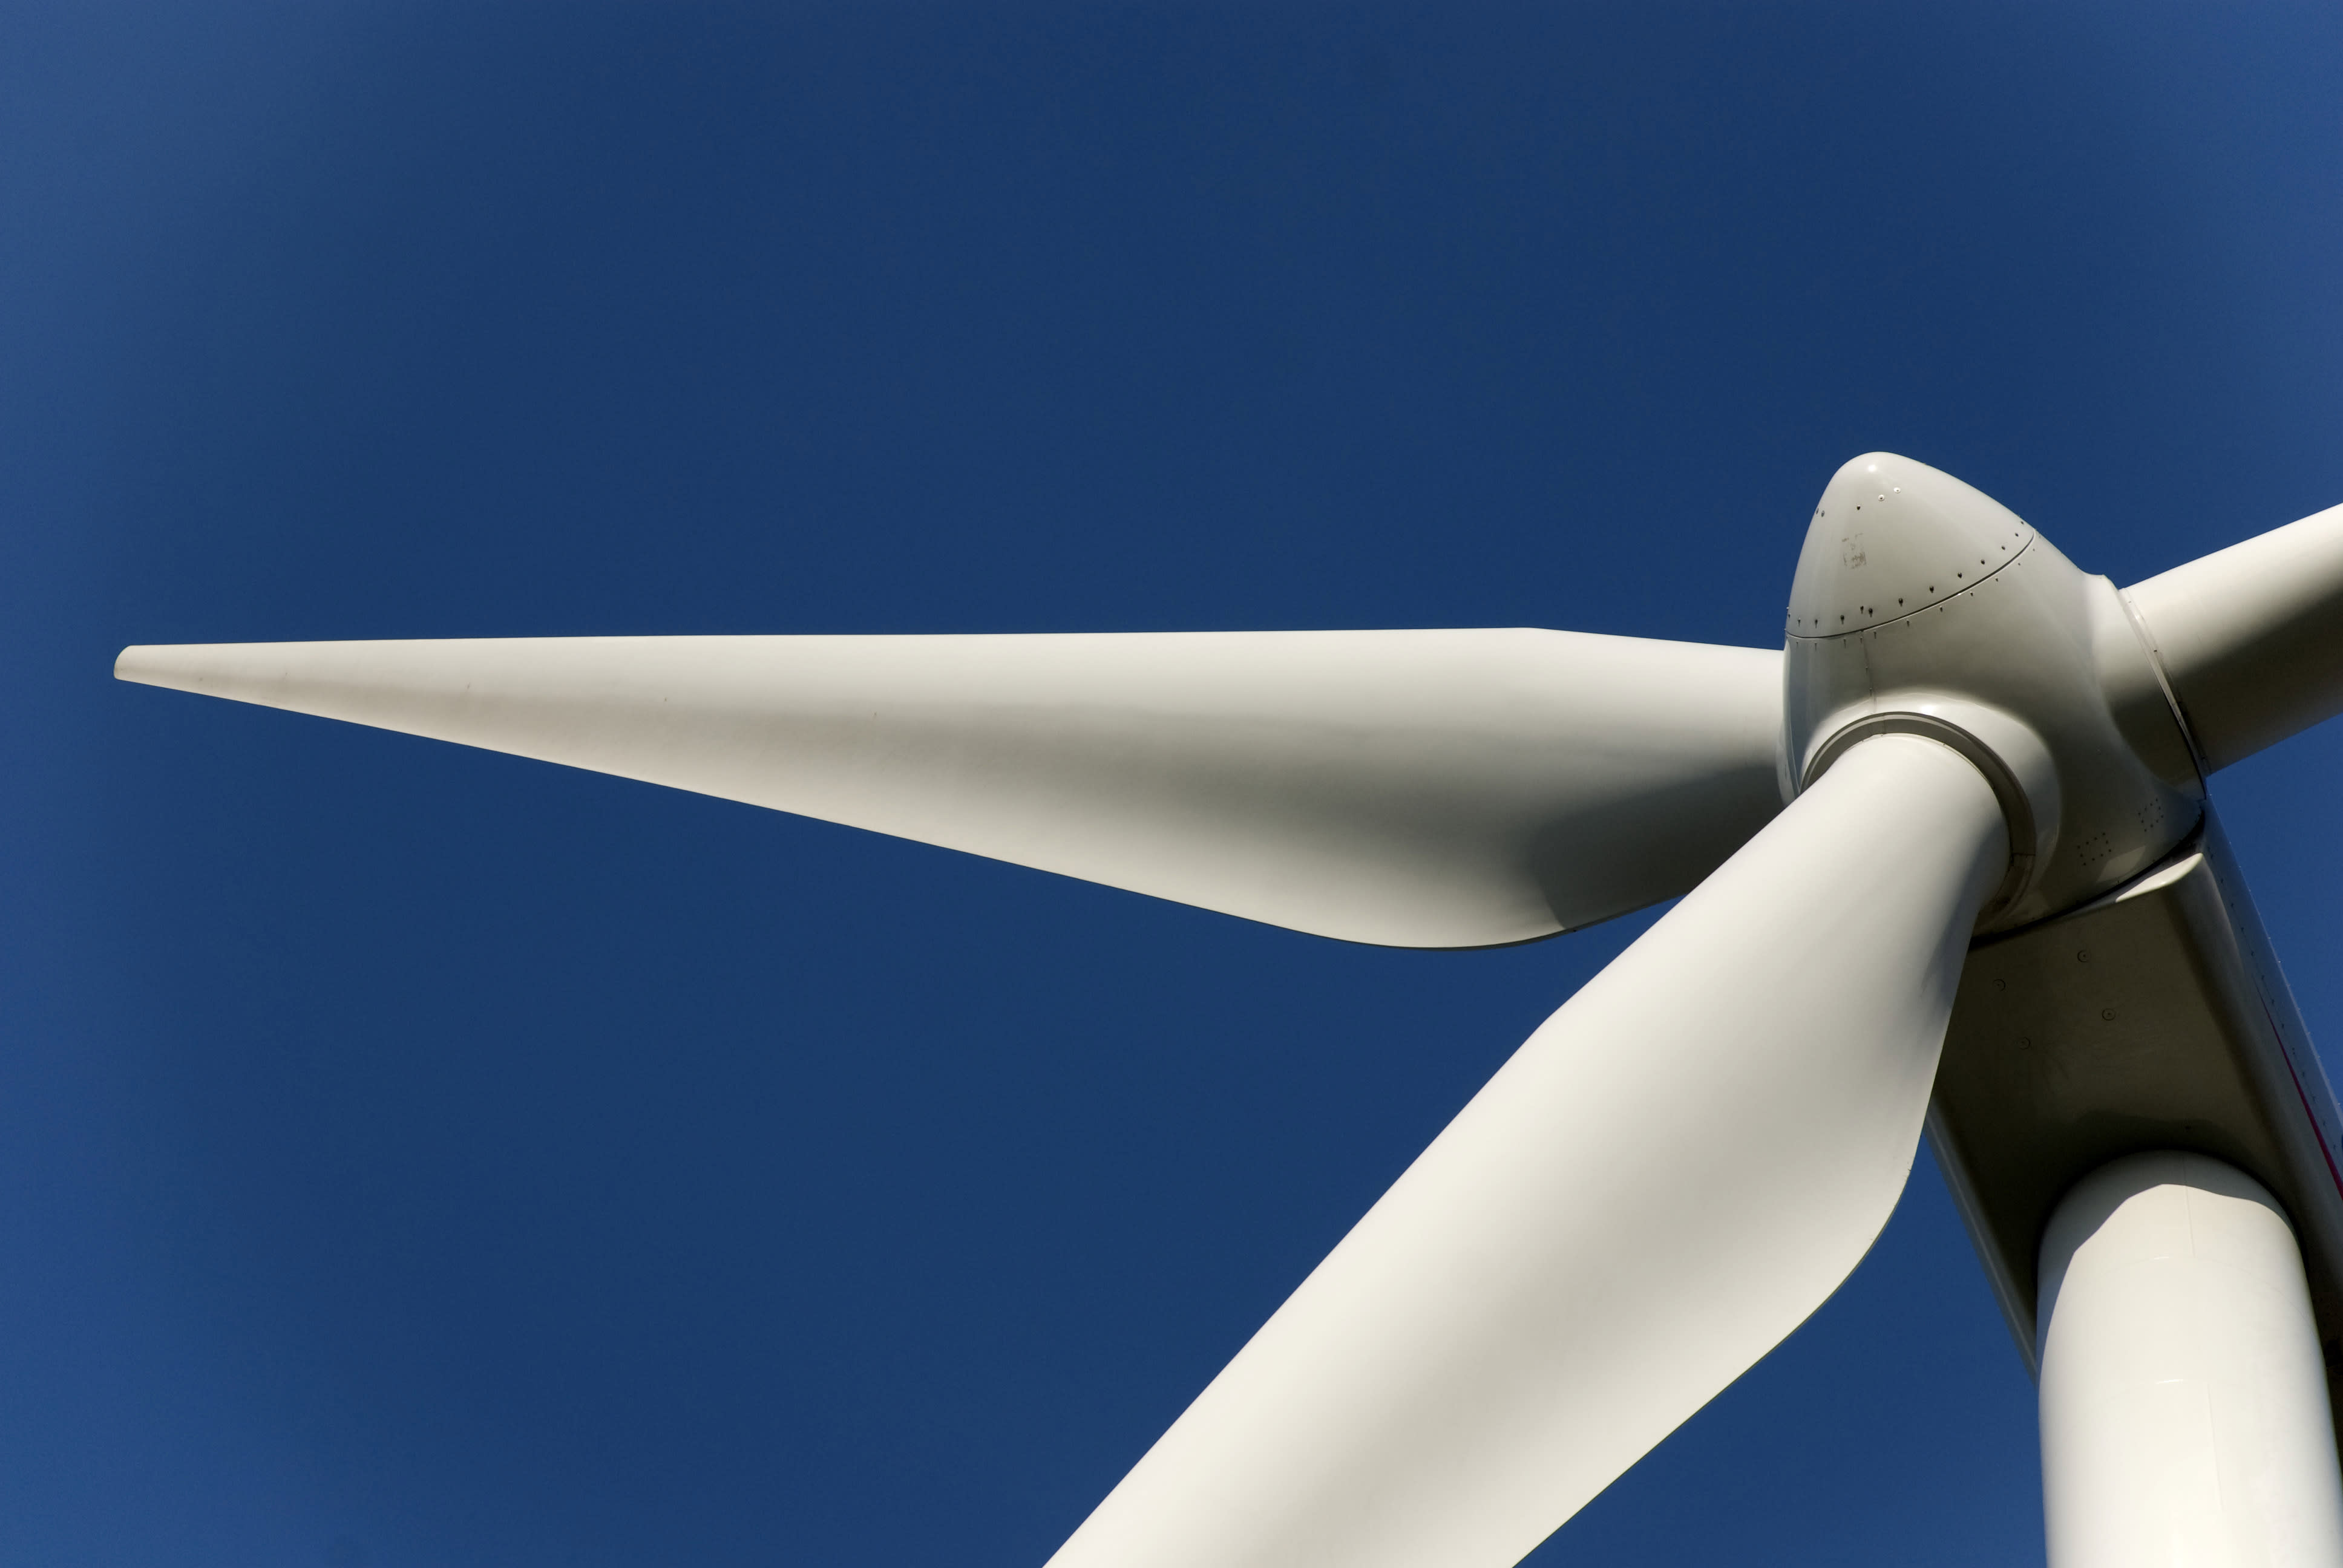 Work to start soon on Texan wind farm that will power over 160,000 homes